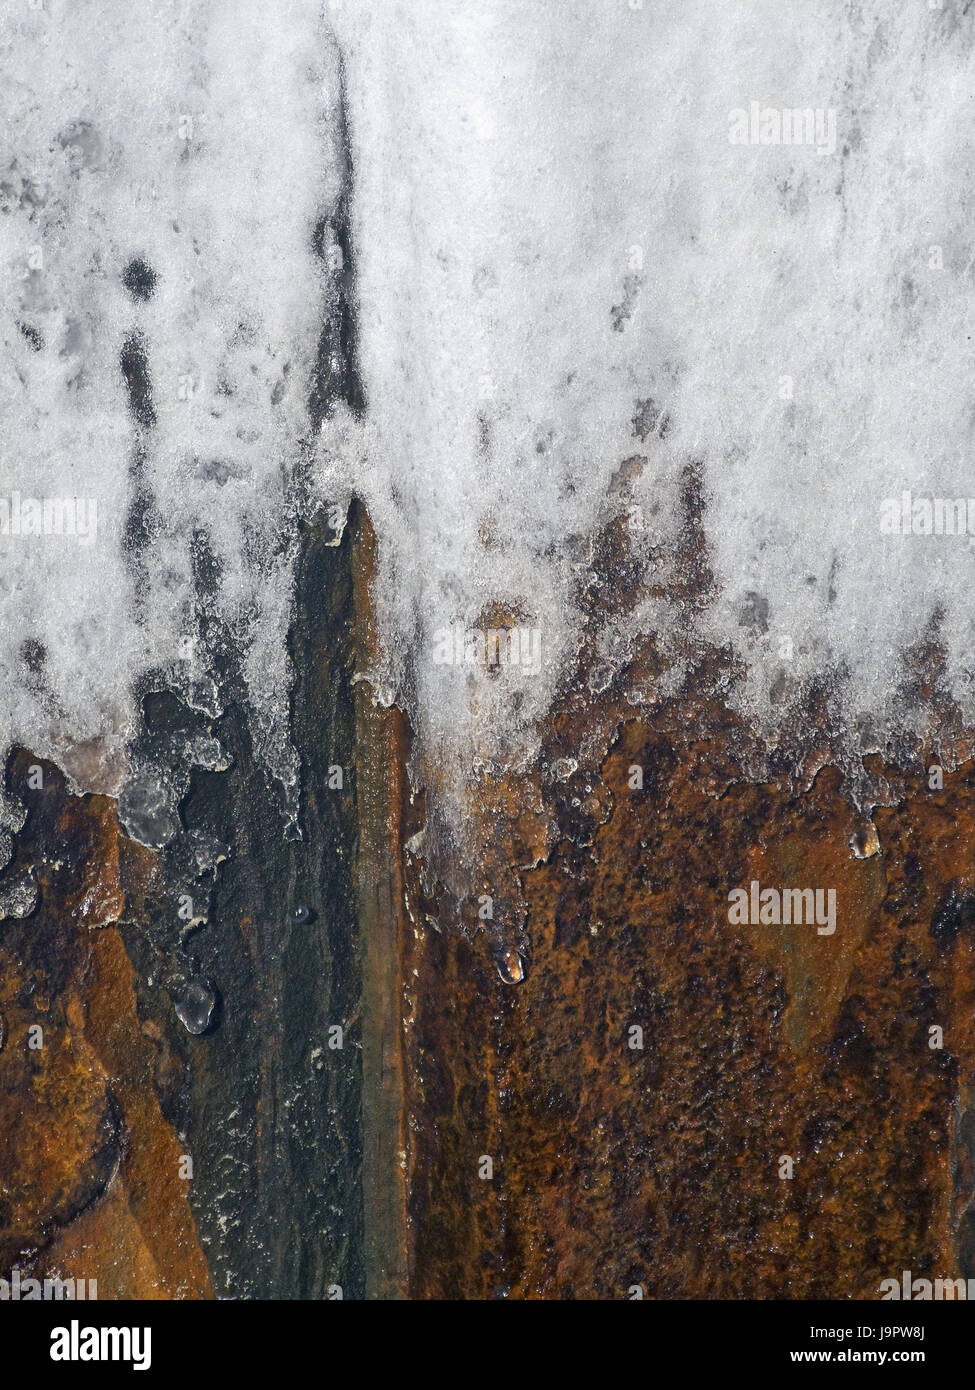 Metal plate,old,rusty,E sharp,close up,metal,iron,steel,corrosion,remains,iron,rust,freezes over,layer of ice,cold,coldly,season,thaw,winter,expiration,transitoriness,nobody,medium - Stock Image